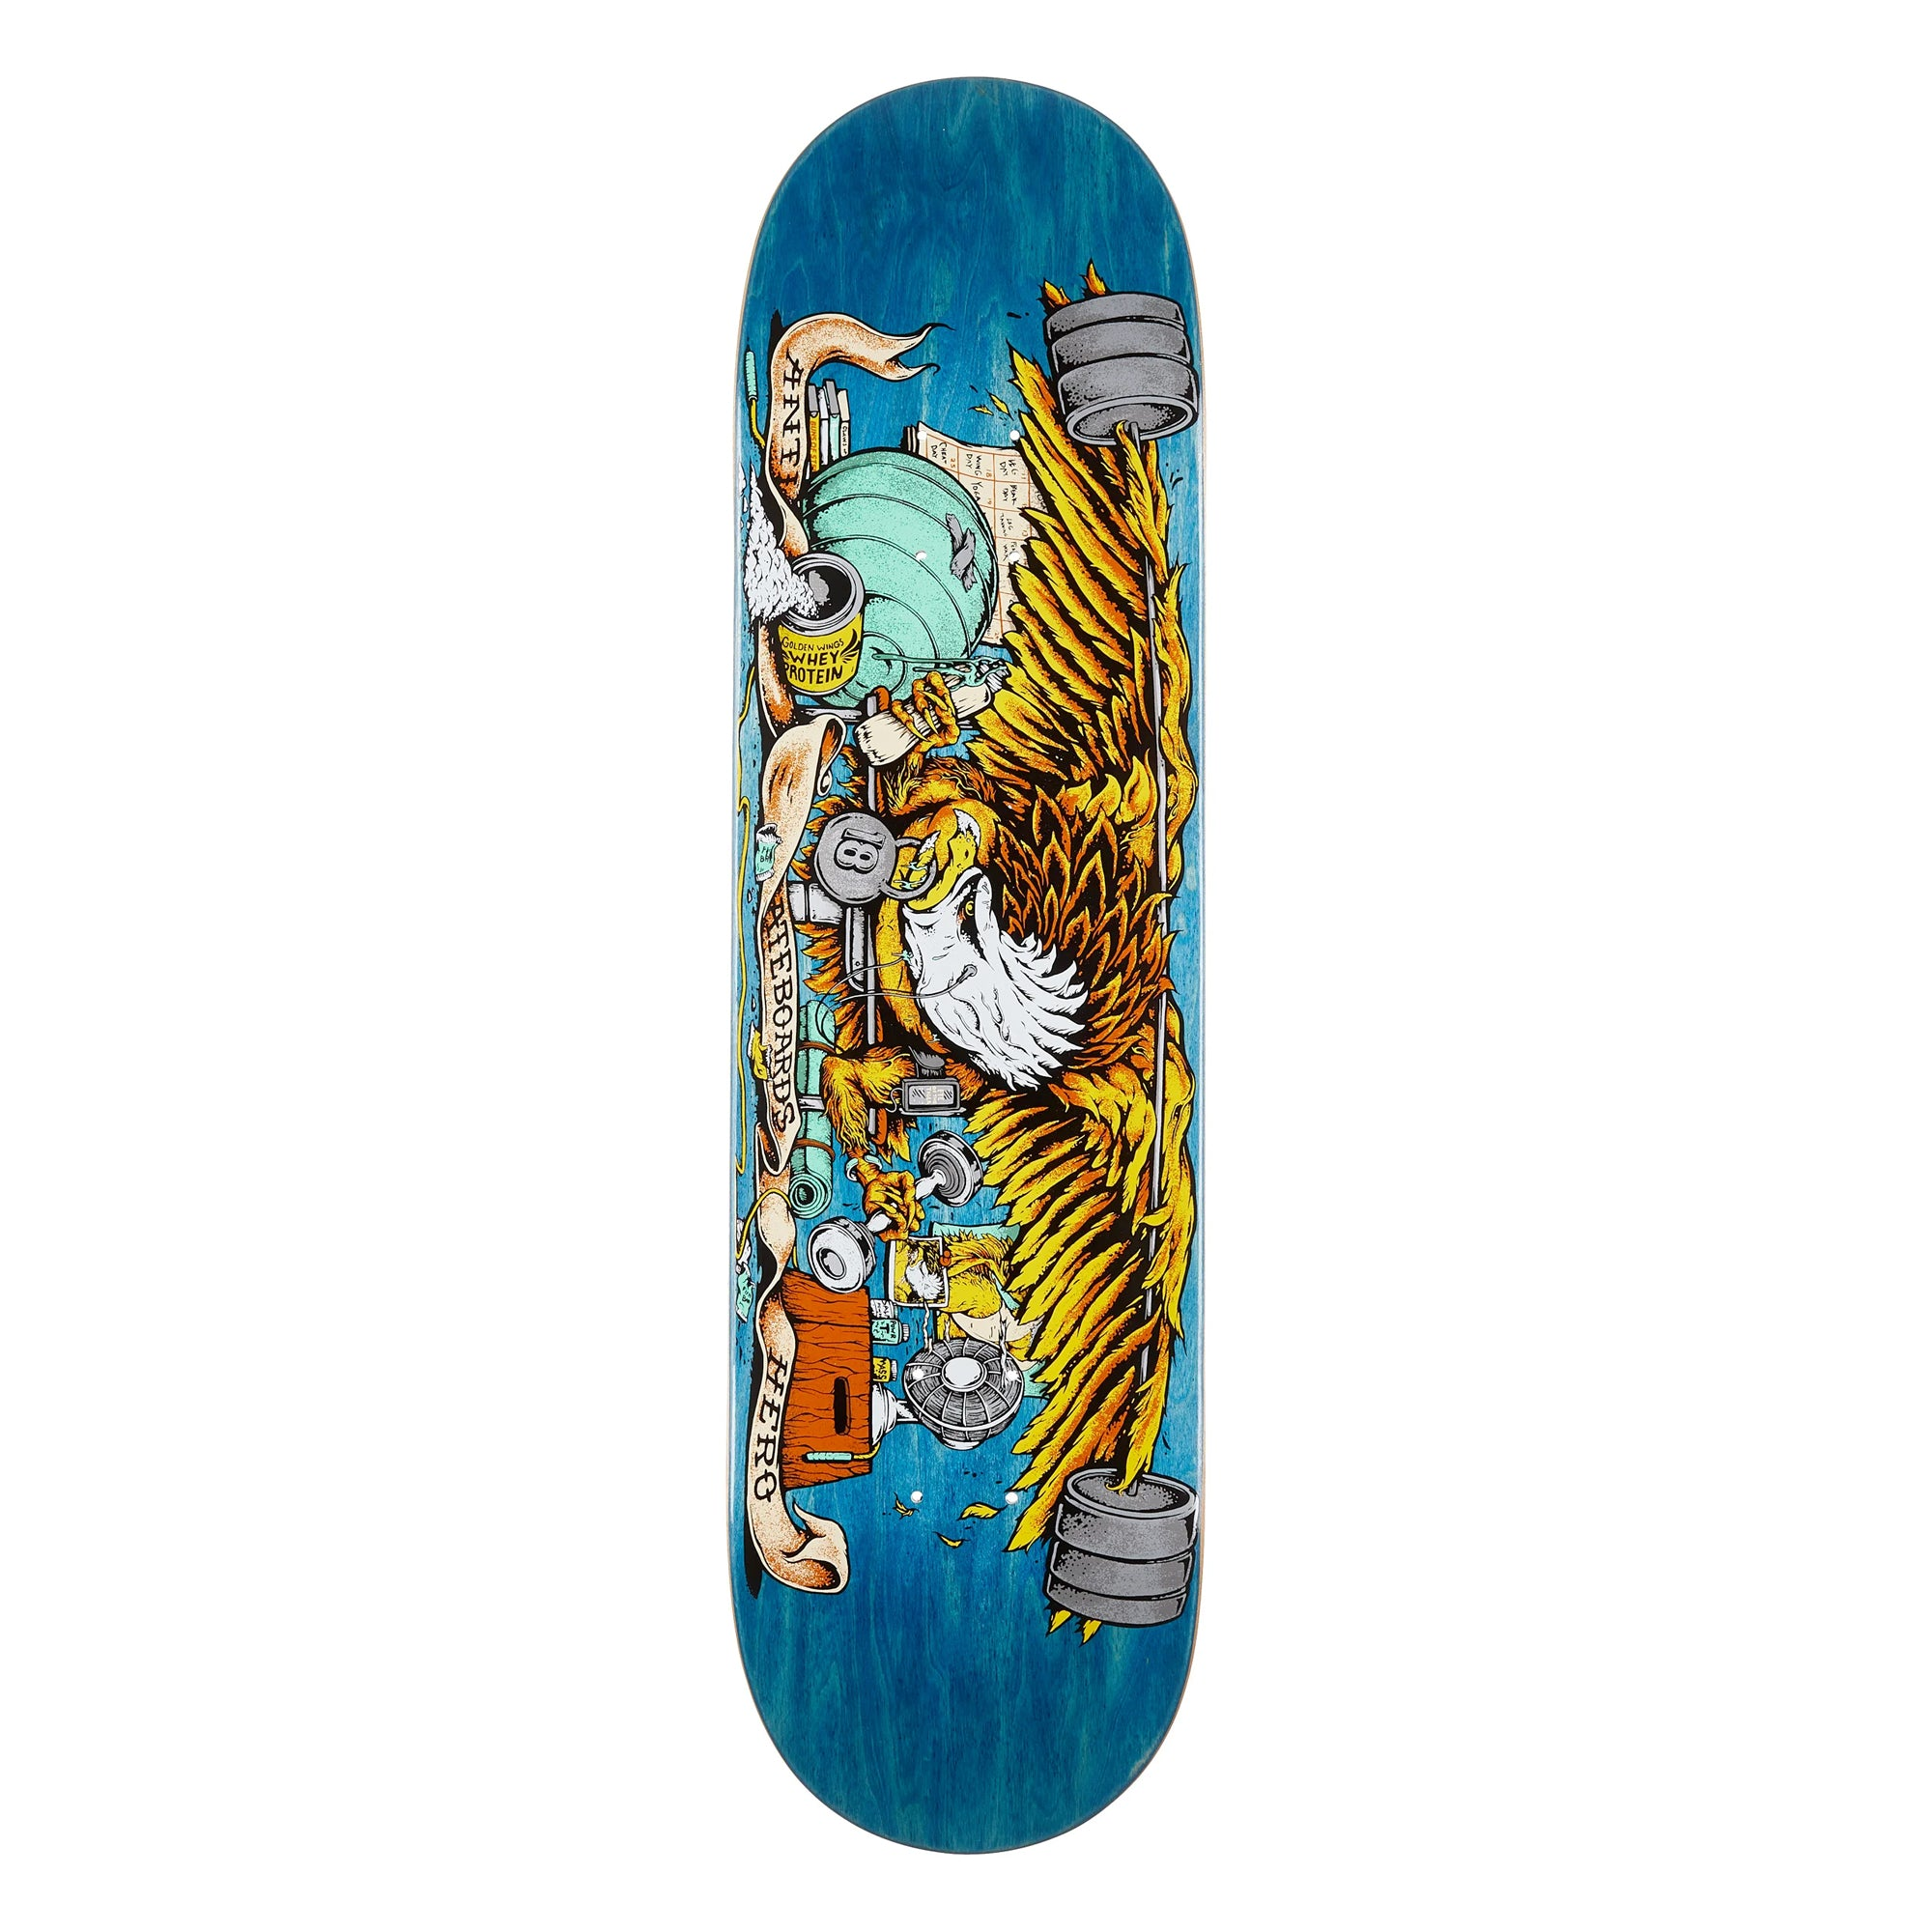 Anti-Hero Pumping Feathers 8.5 Skateboard Deck